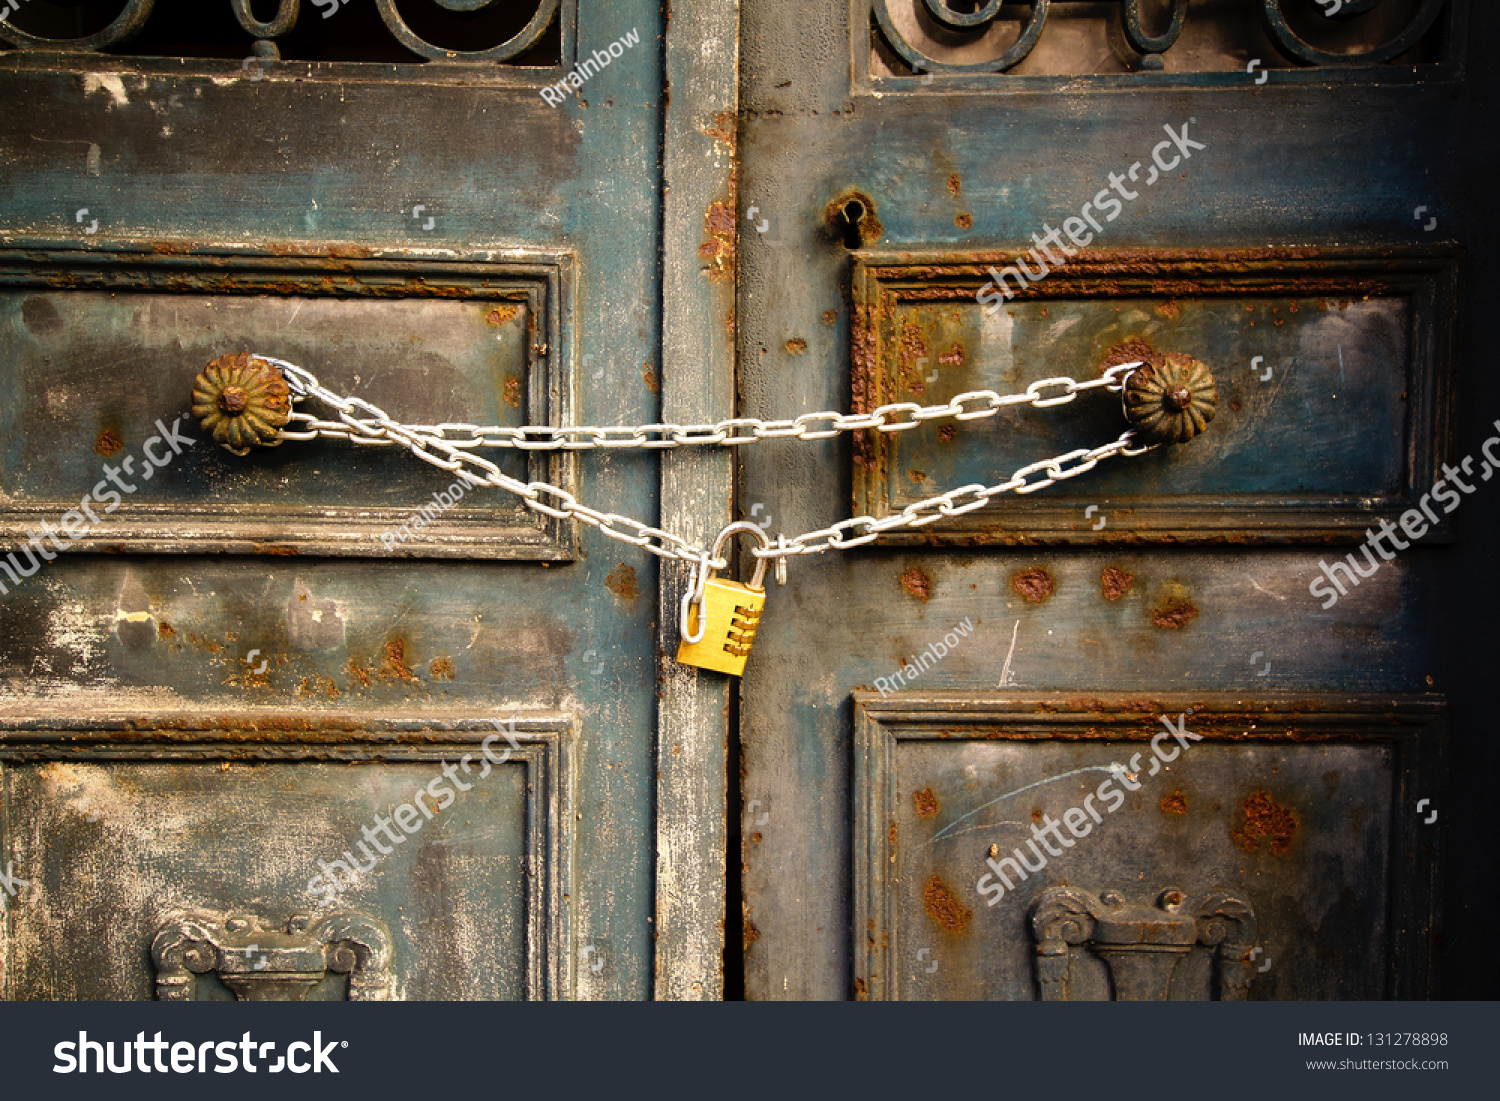 Rusty Door old rusty door lockedchain stock photo 131278898 - shutterstock